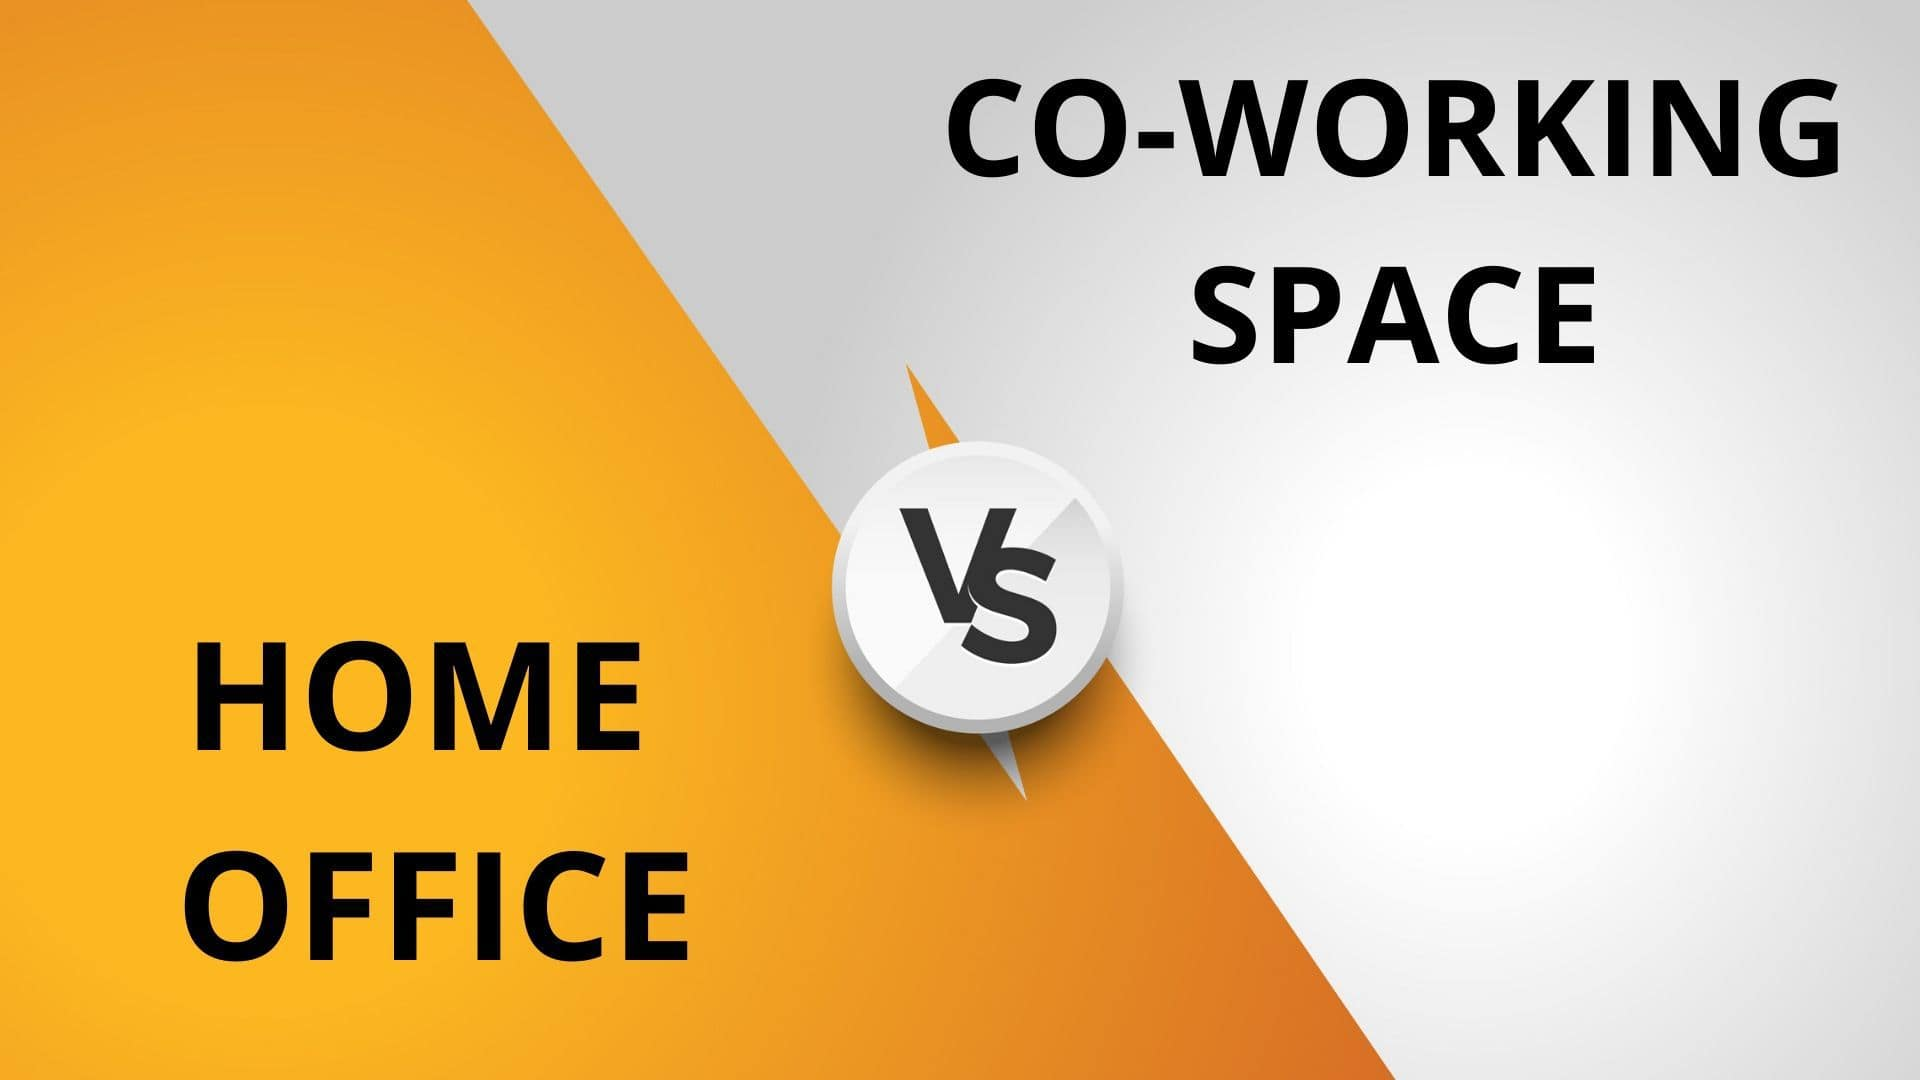 Home office vs Co-working space